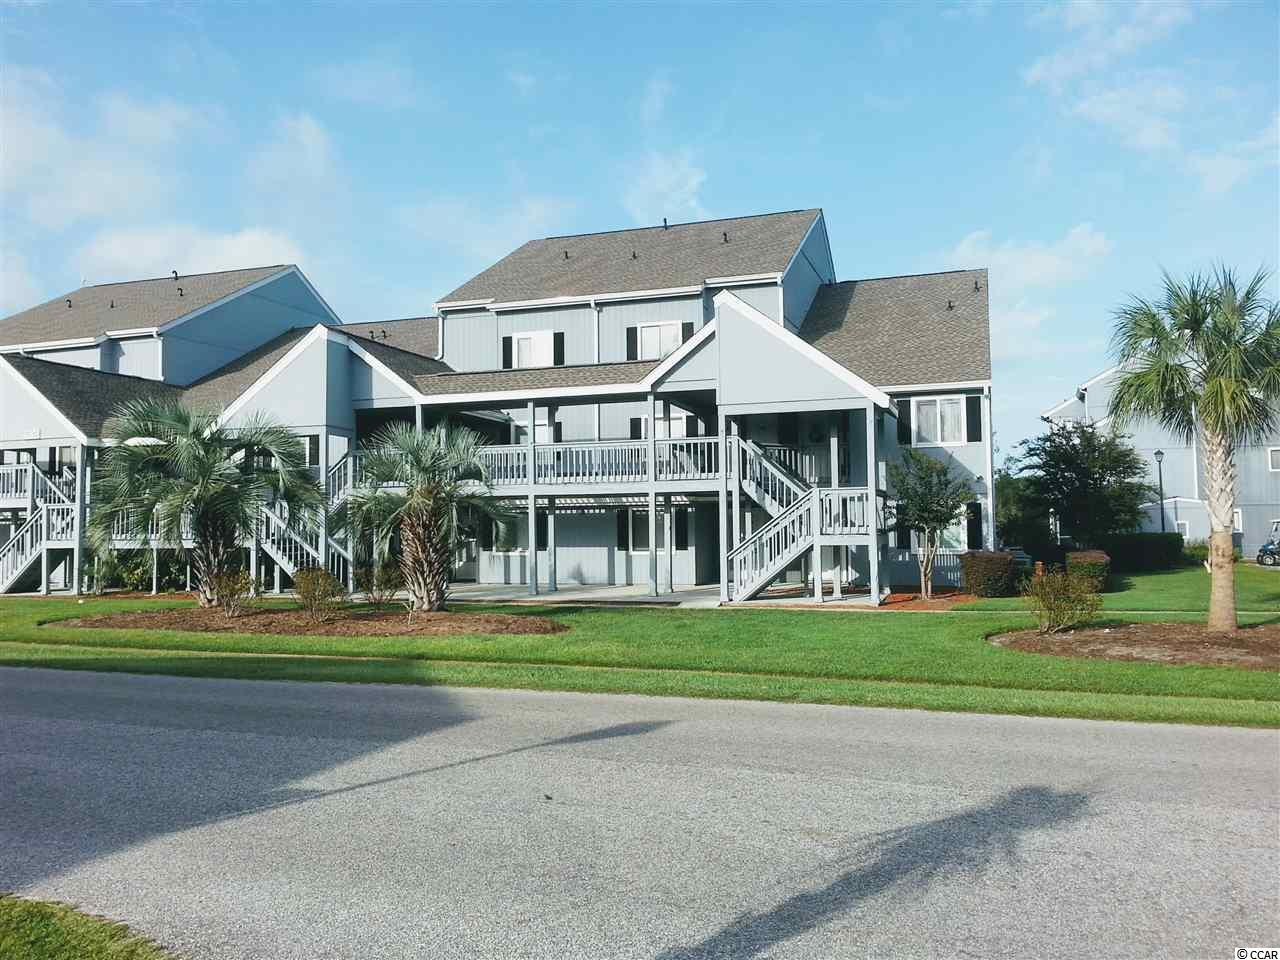 Beautiful 2br condo close to Coastal Carolina and to the beach to major shopping mall;restaurants and hospital.Highly desired area.